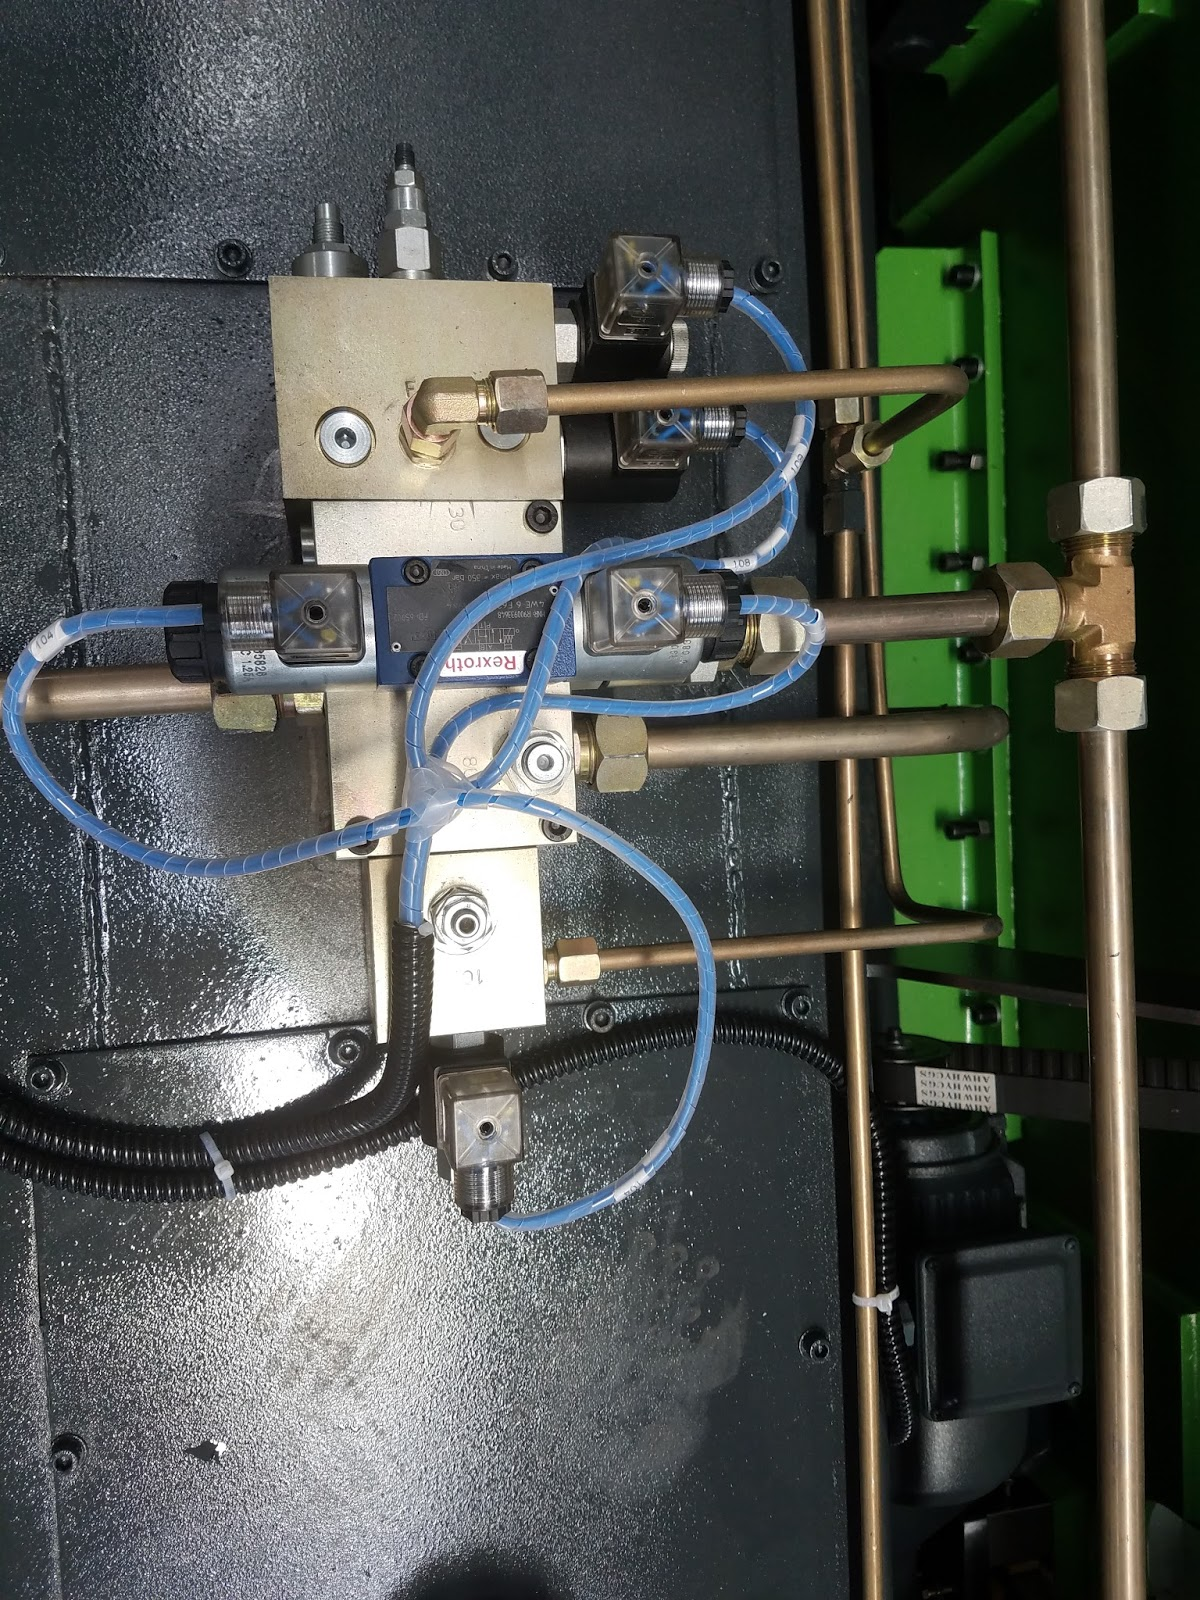 The Hydraulic Bender Will Inevitable To Have Some Problems Now We Introduce Solving Methods Regarding Normal